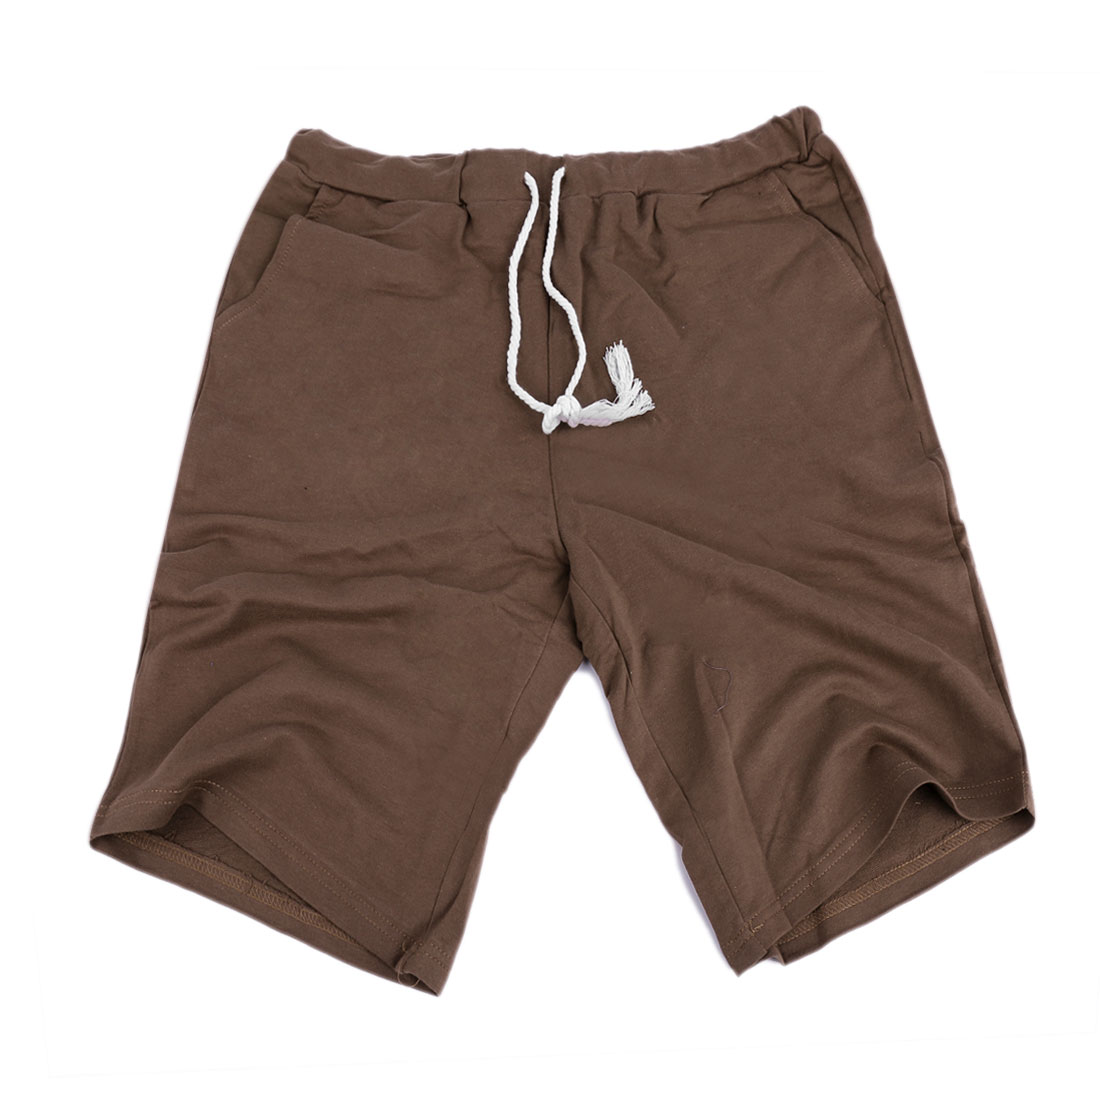 Mens Coffee Color Drawstring Elastic Waist Casual Chic Shorts W29